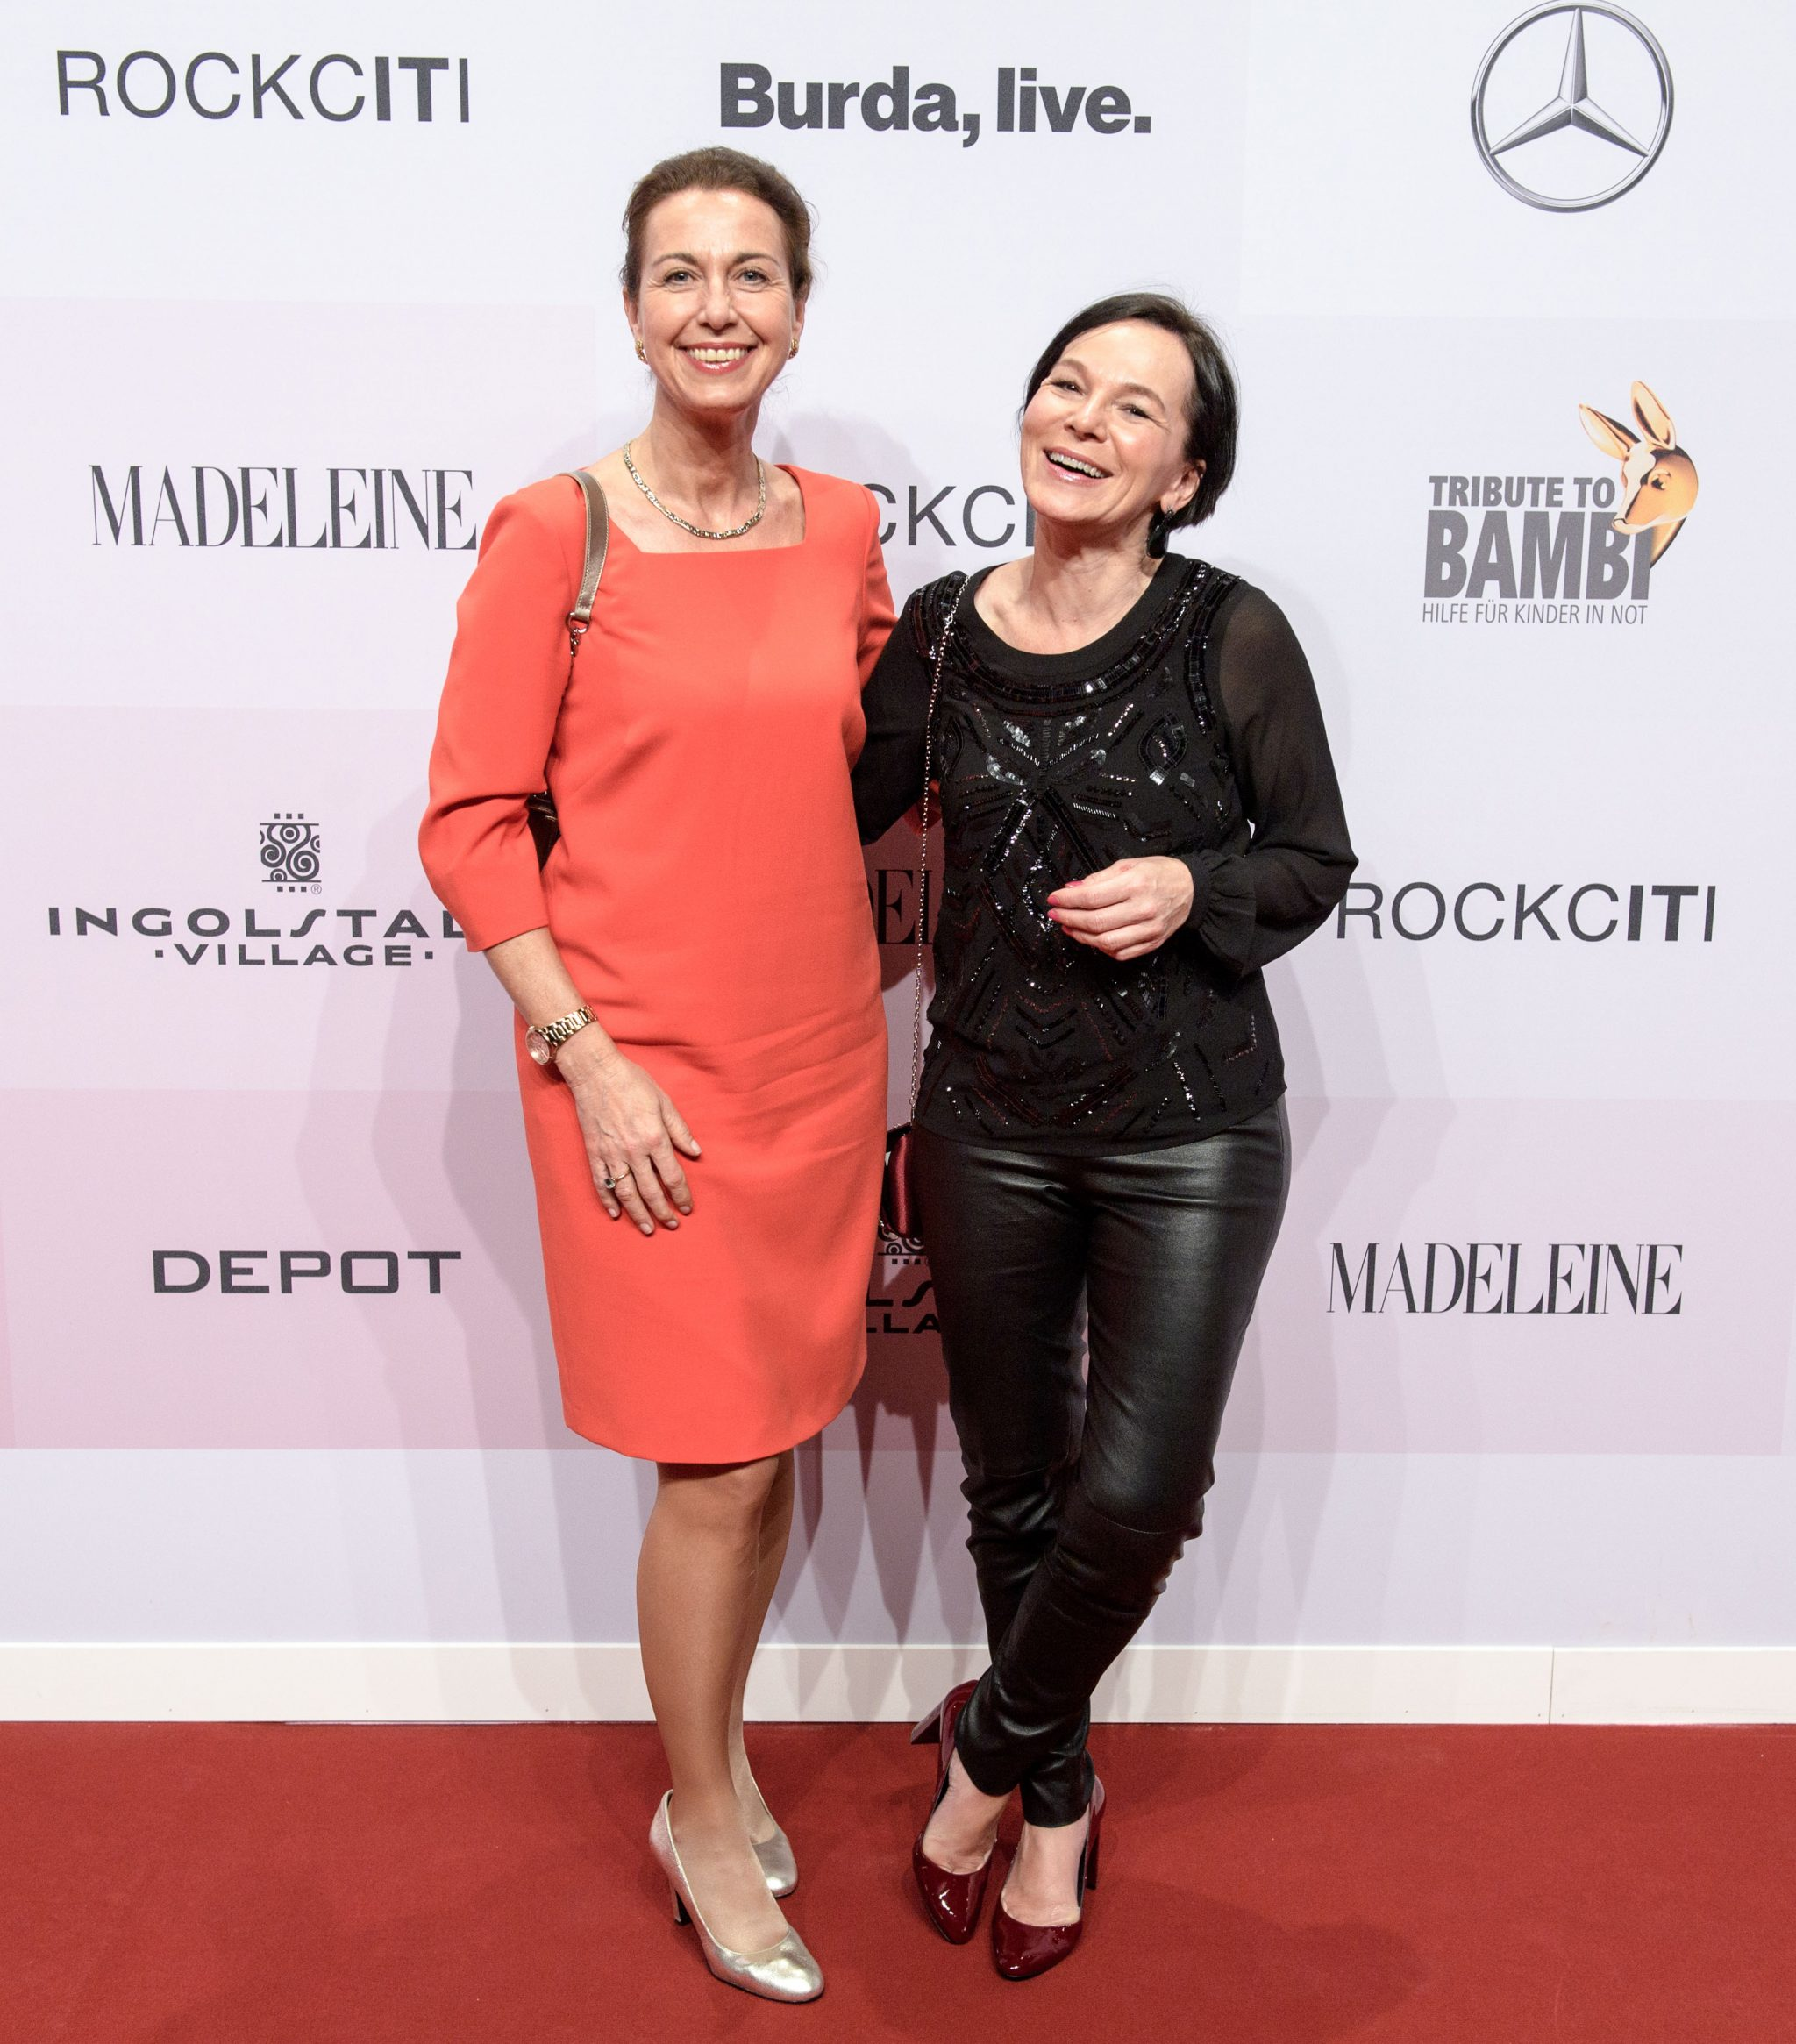 Tribute to Bambi Madeleine Red Carpet LadyofStyle